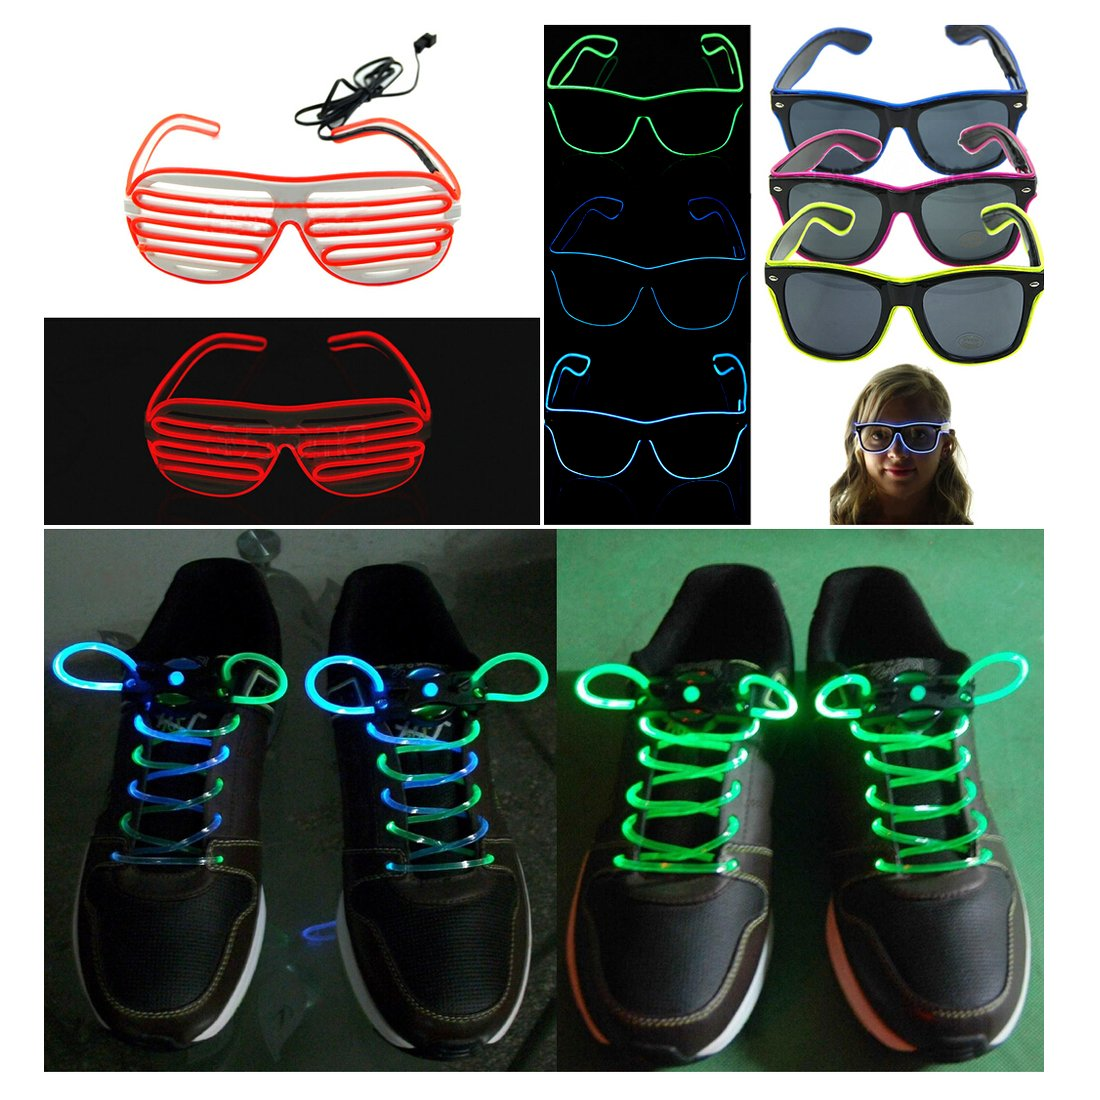 Glowing//Strobing Electroluminescent LED Strips Fluorescent Green Colors Oweisong Ultra Brightness 3M 9ft 3V EL Wire Rope Lights Decoration Flexible Neon String Light